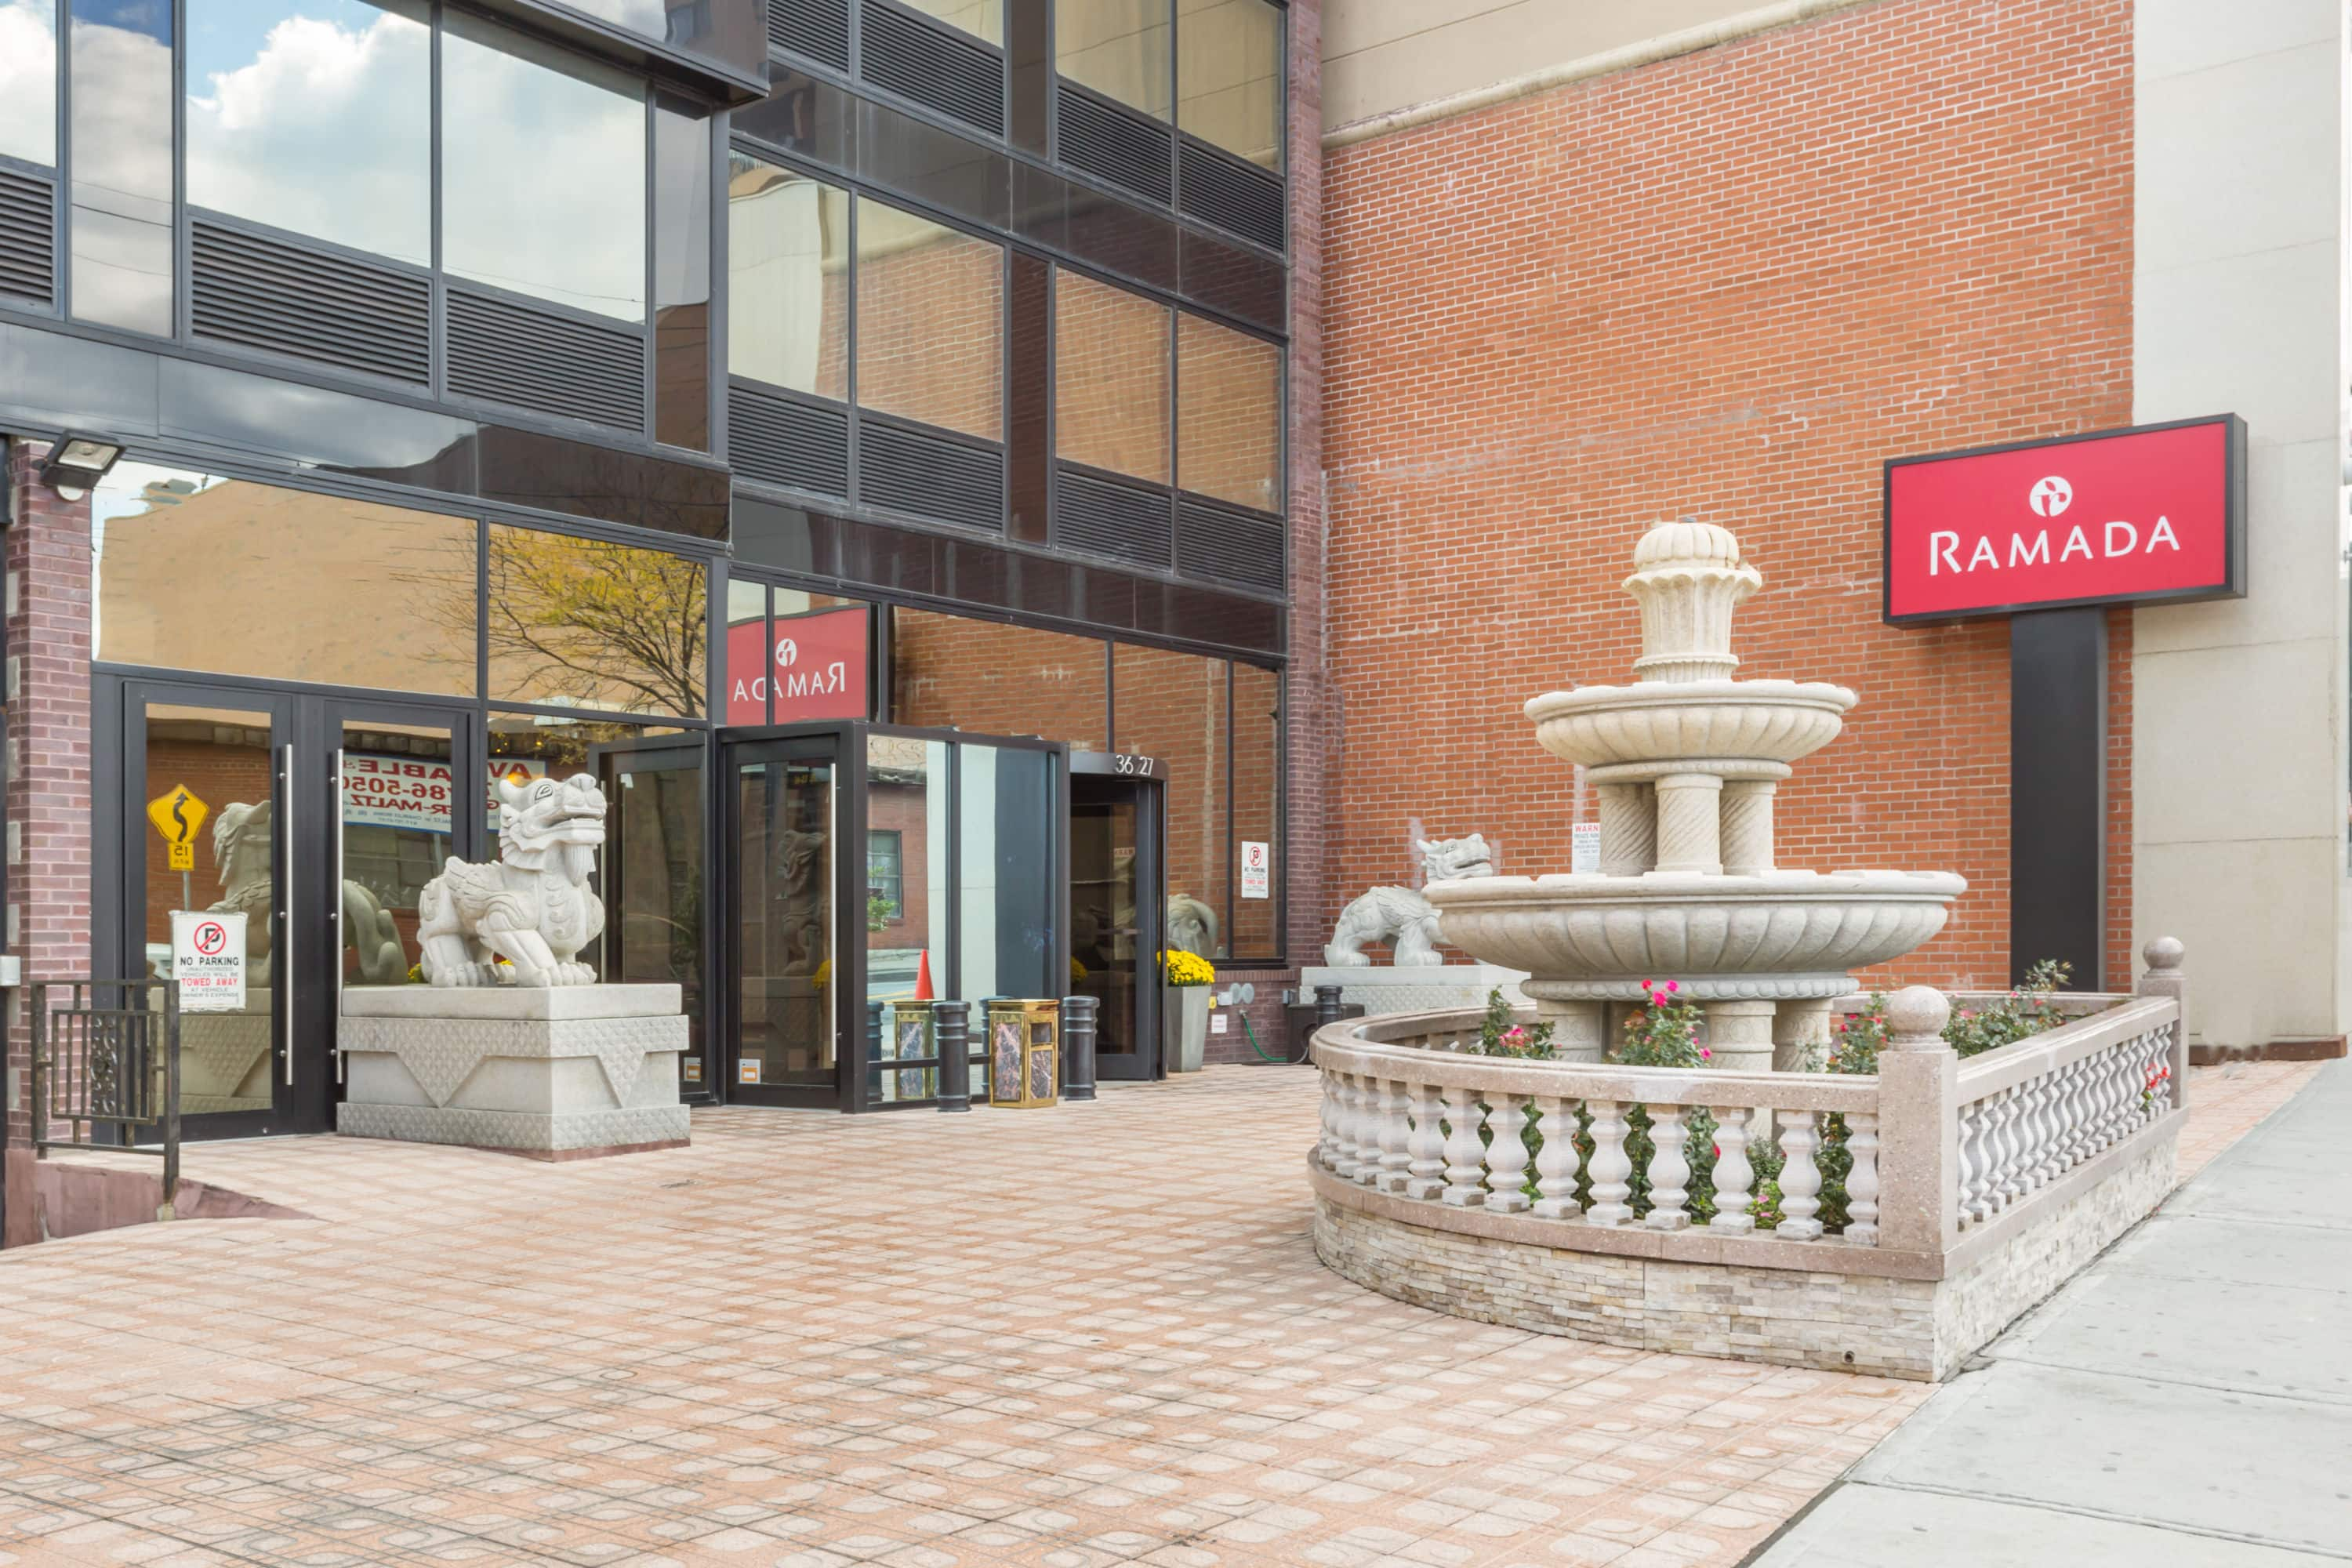 Ramada by Wyndham Flushing Queens | Flushing, NY Hotels